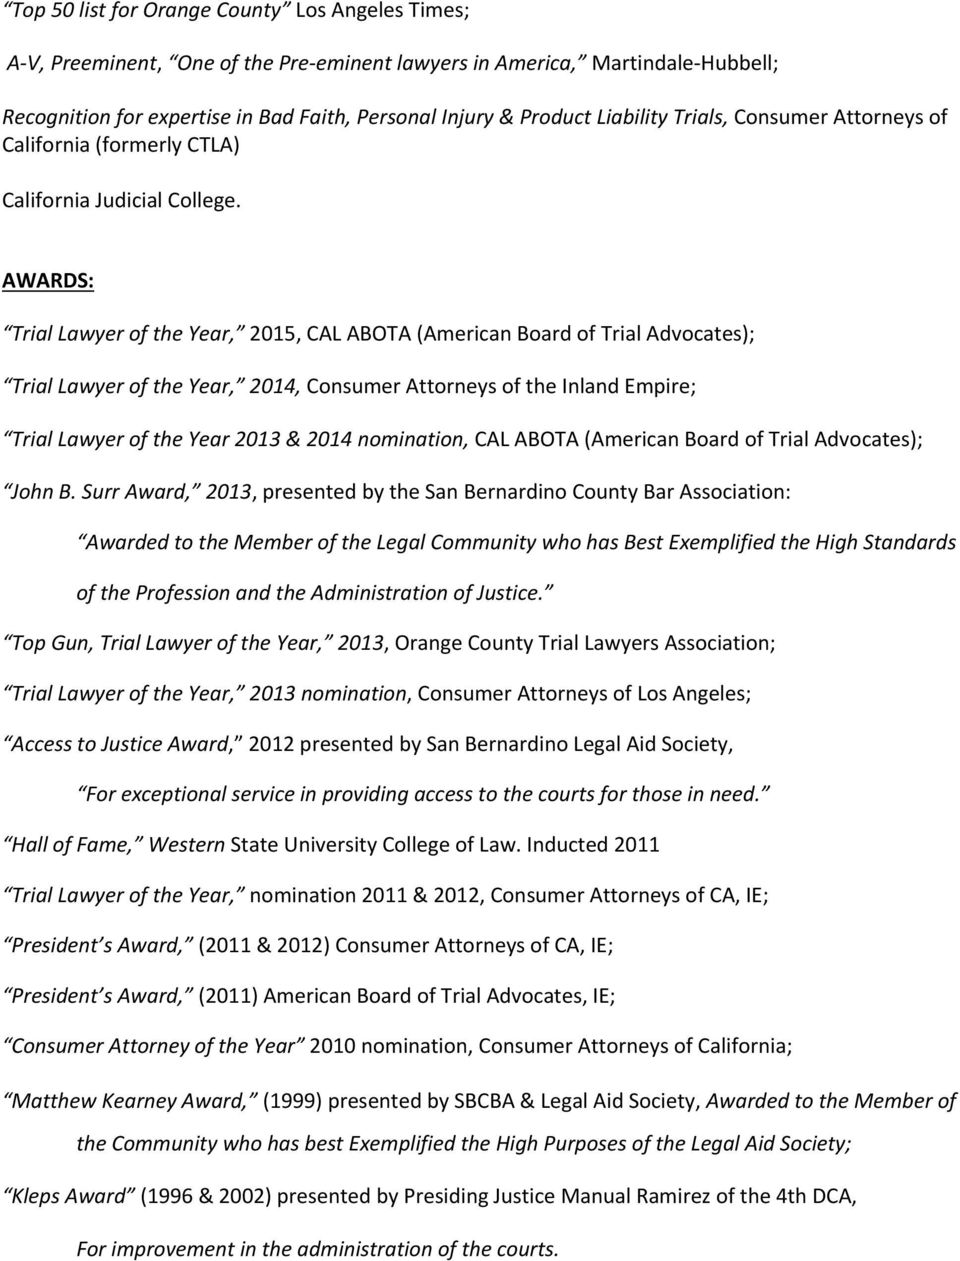 AWARDS: Trial Lawyer of the Year, 2015, CAL ABOTA (American Board of Trial Advocates); Trial Lawyer of the Year, 2014, Consumer Attorneys of the Inland Empire; Trial Lawyer of the Year 2013 & 2014